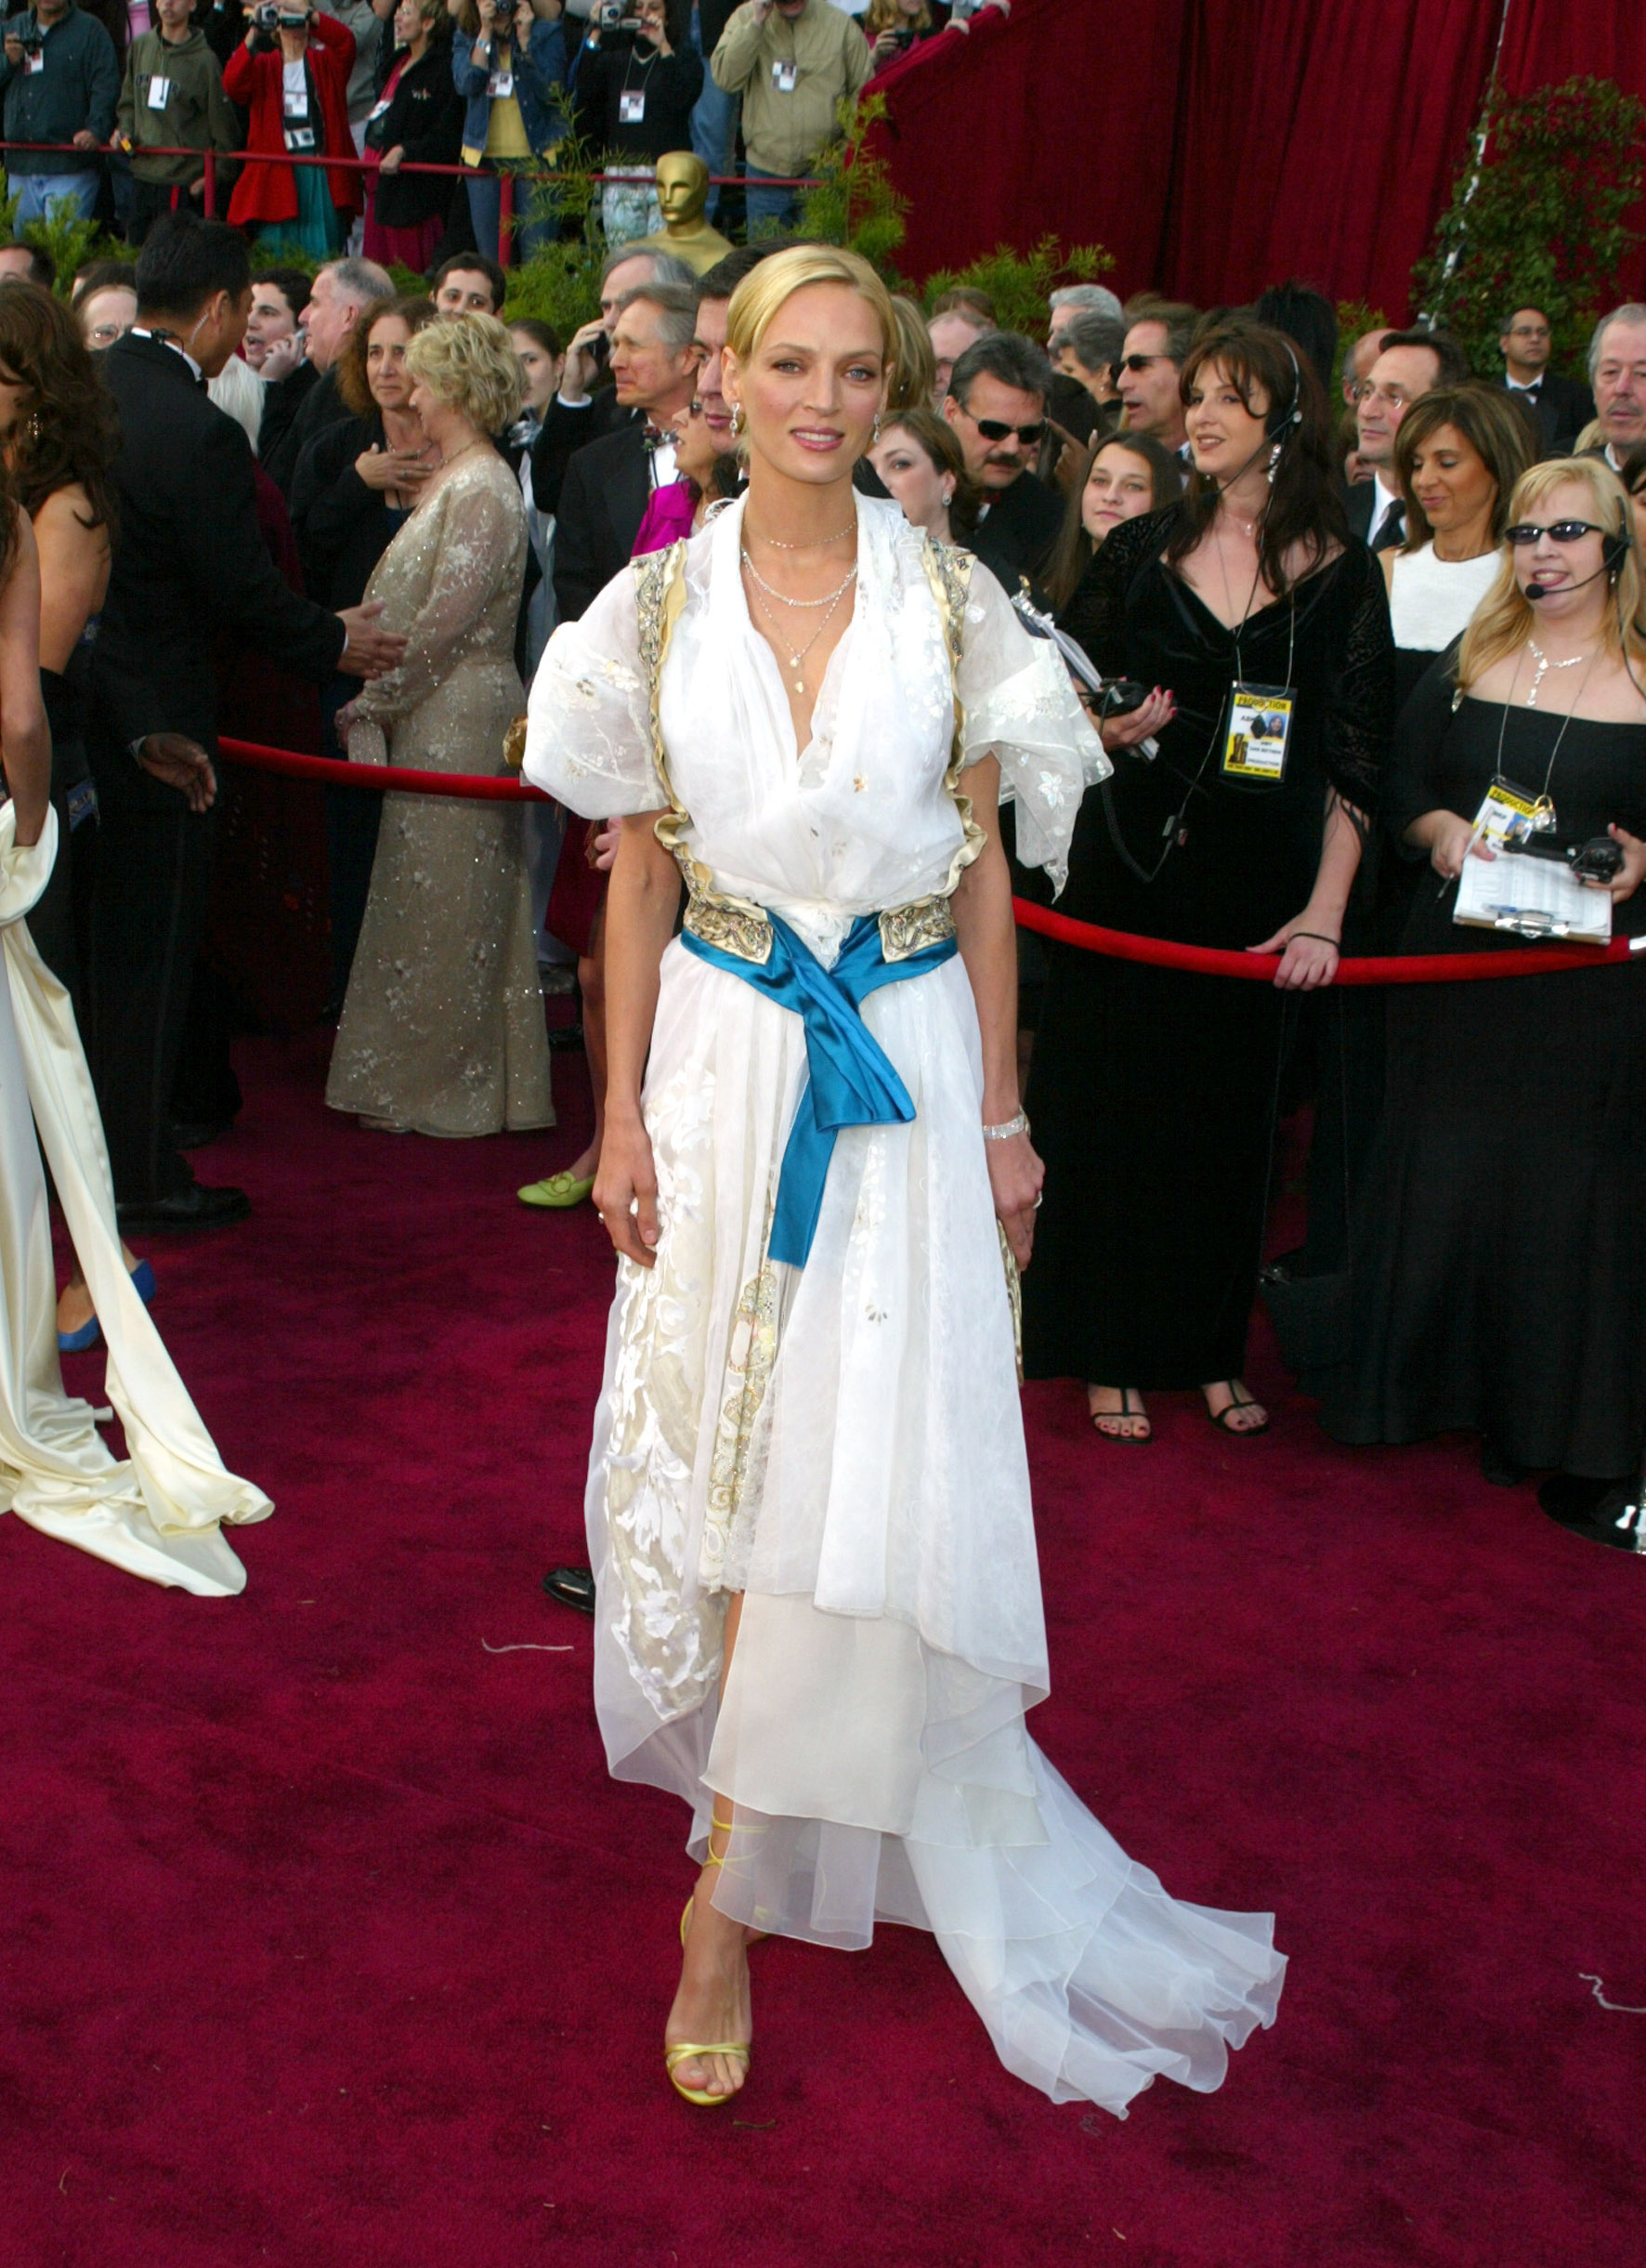 Uma Thurman - 2004 Academy Awards